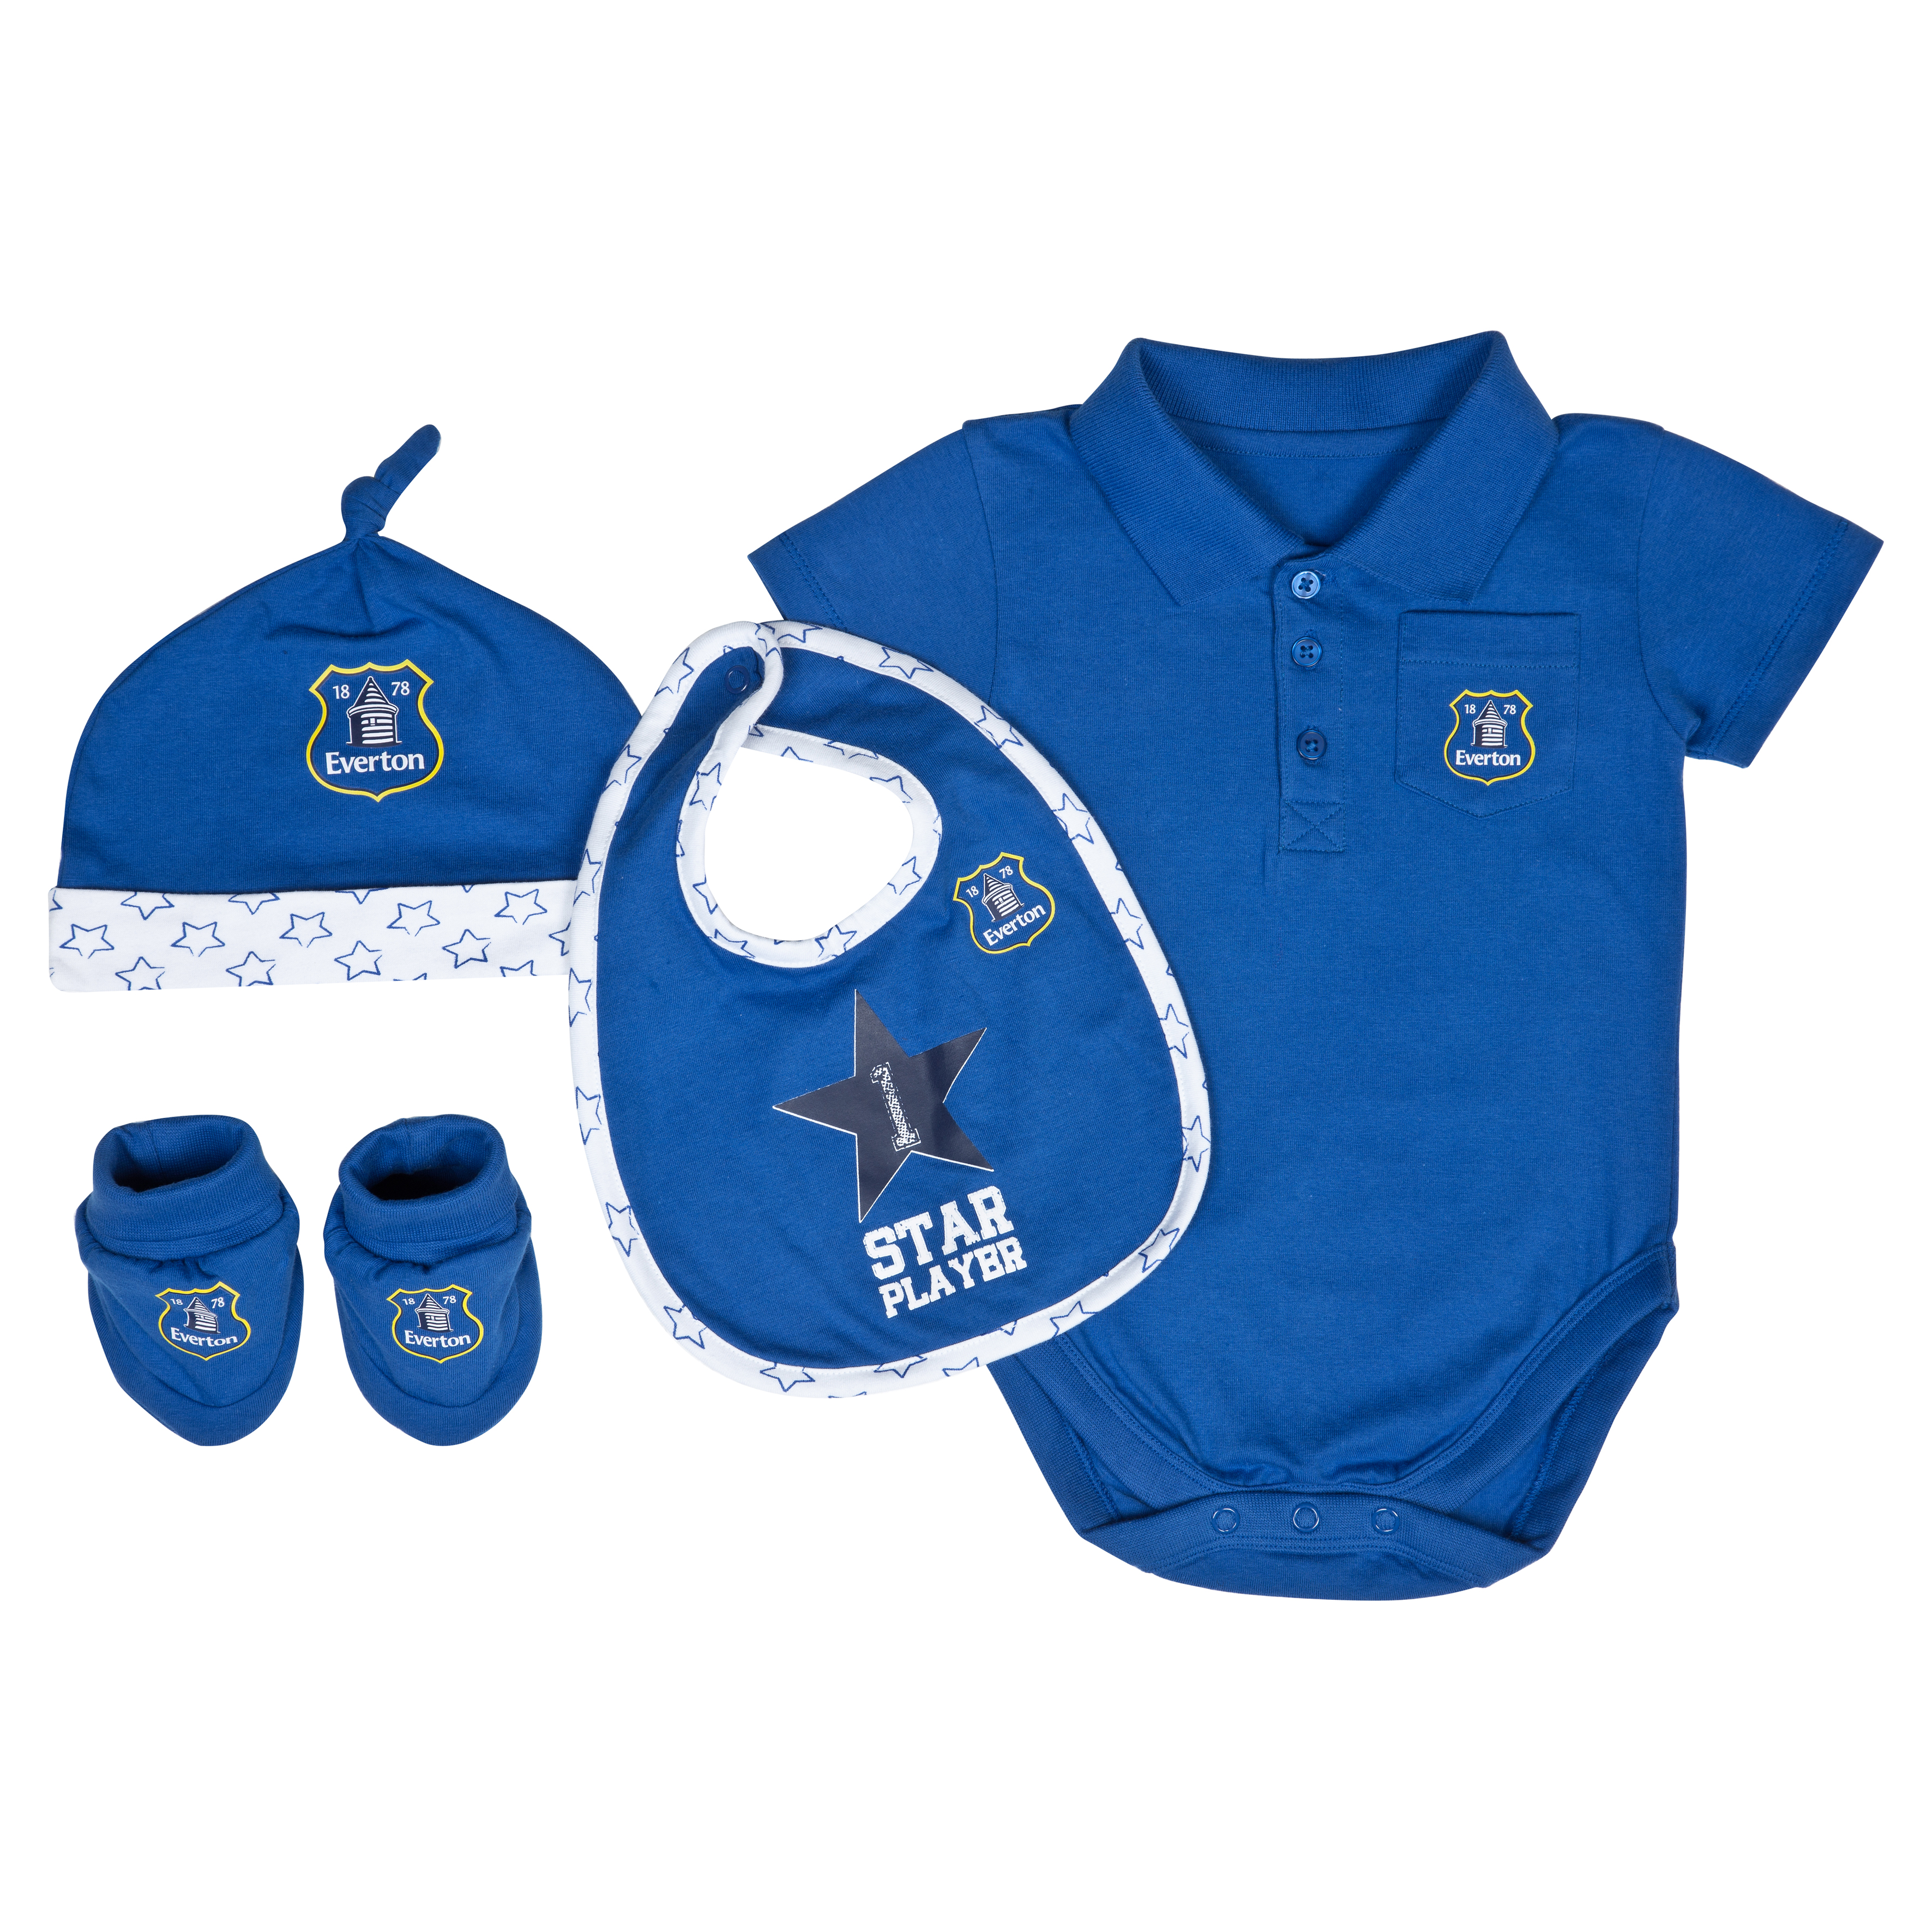 Everton Star Gift Set - Blue/White - Baby